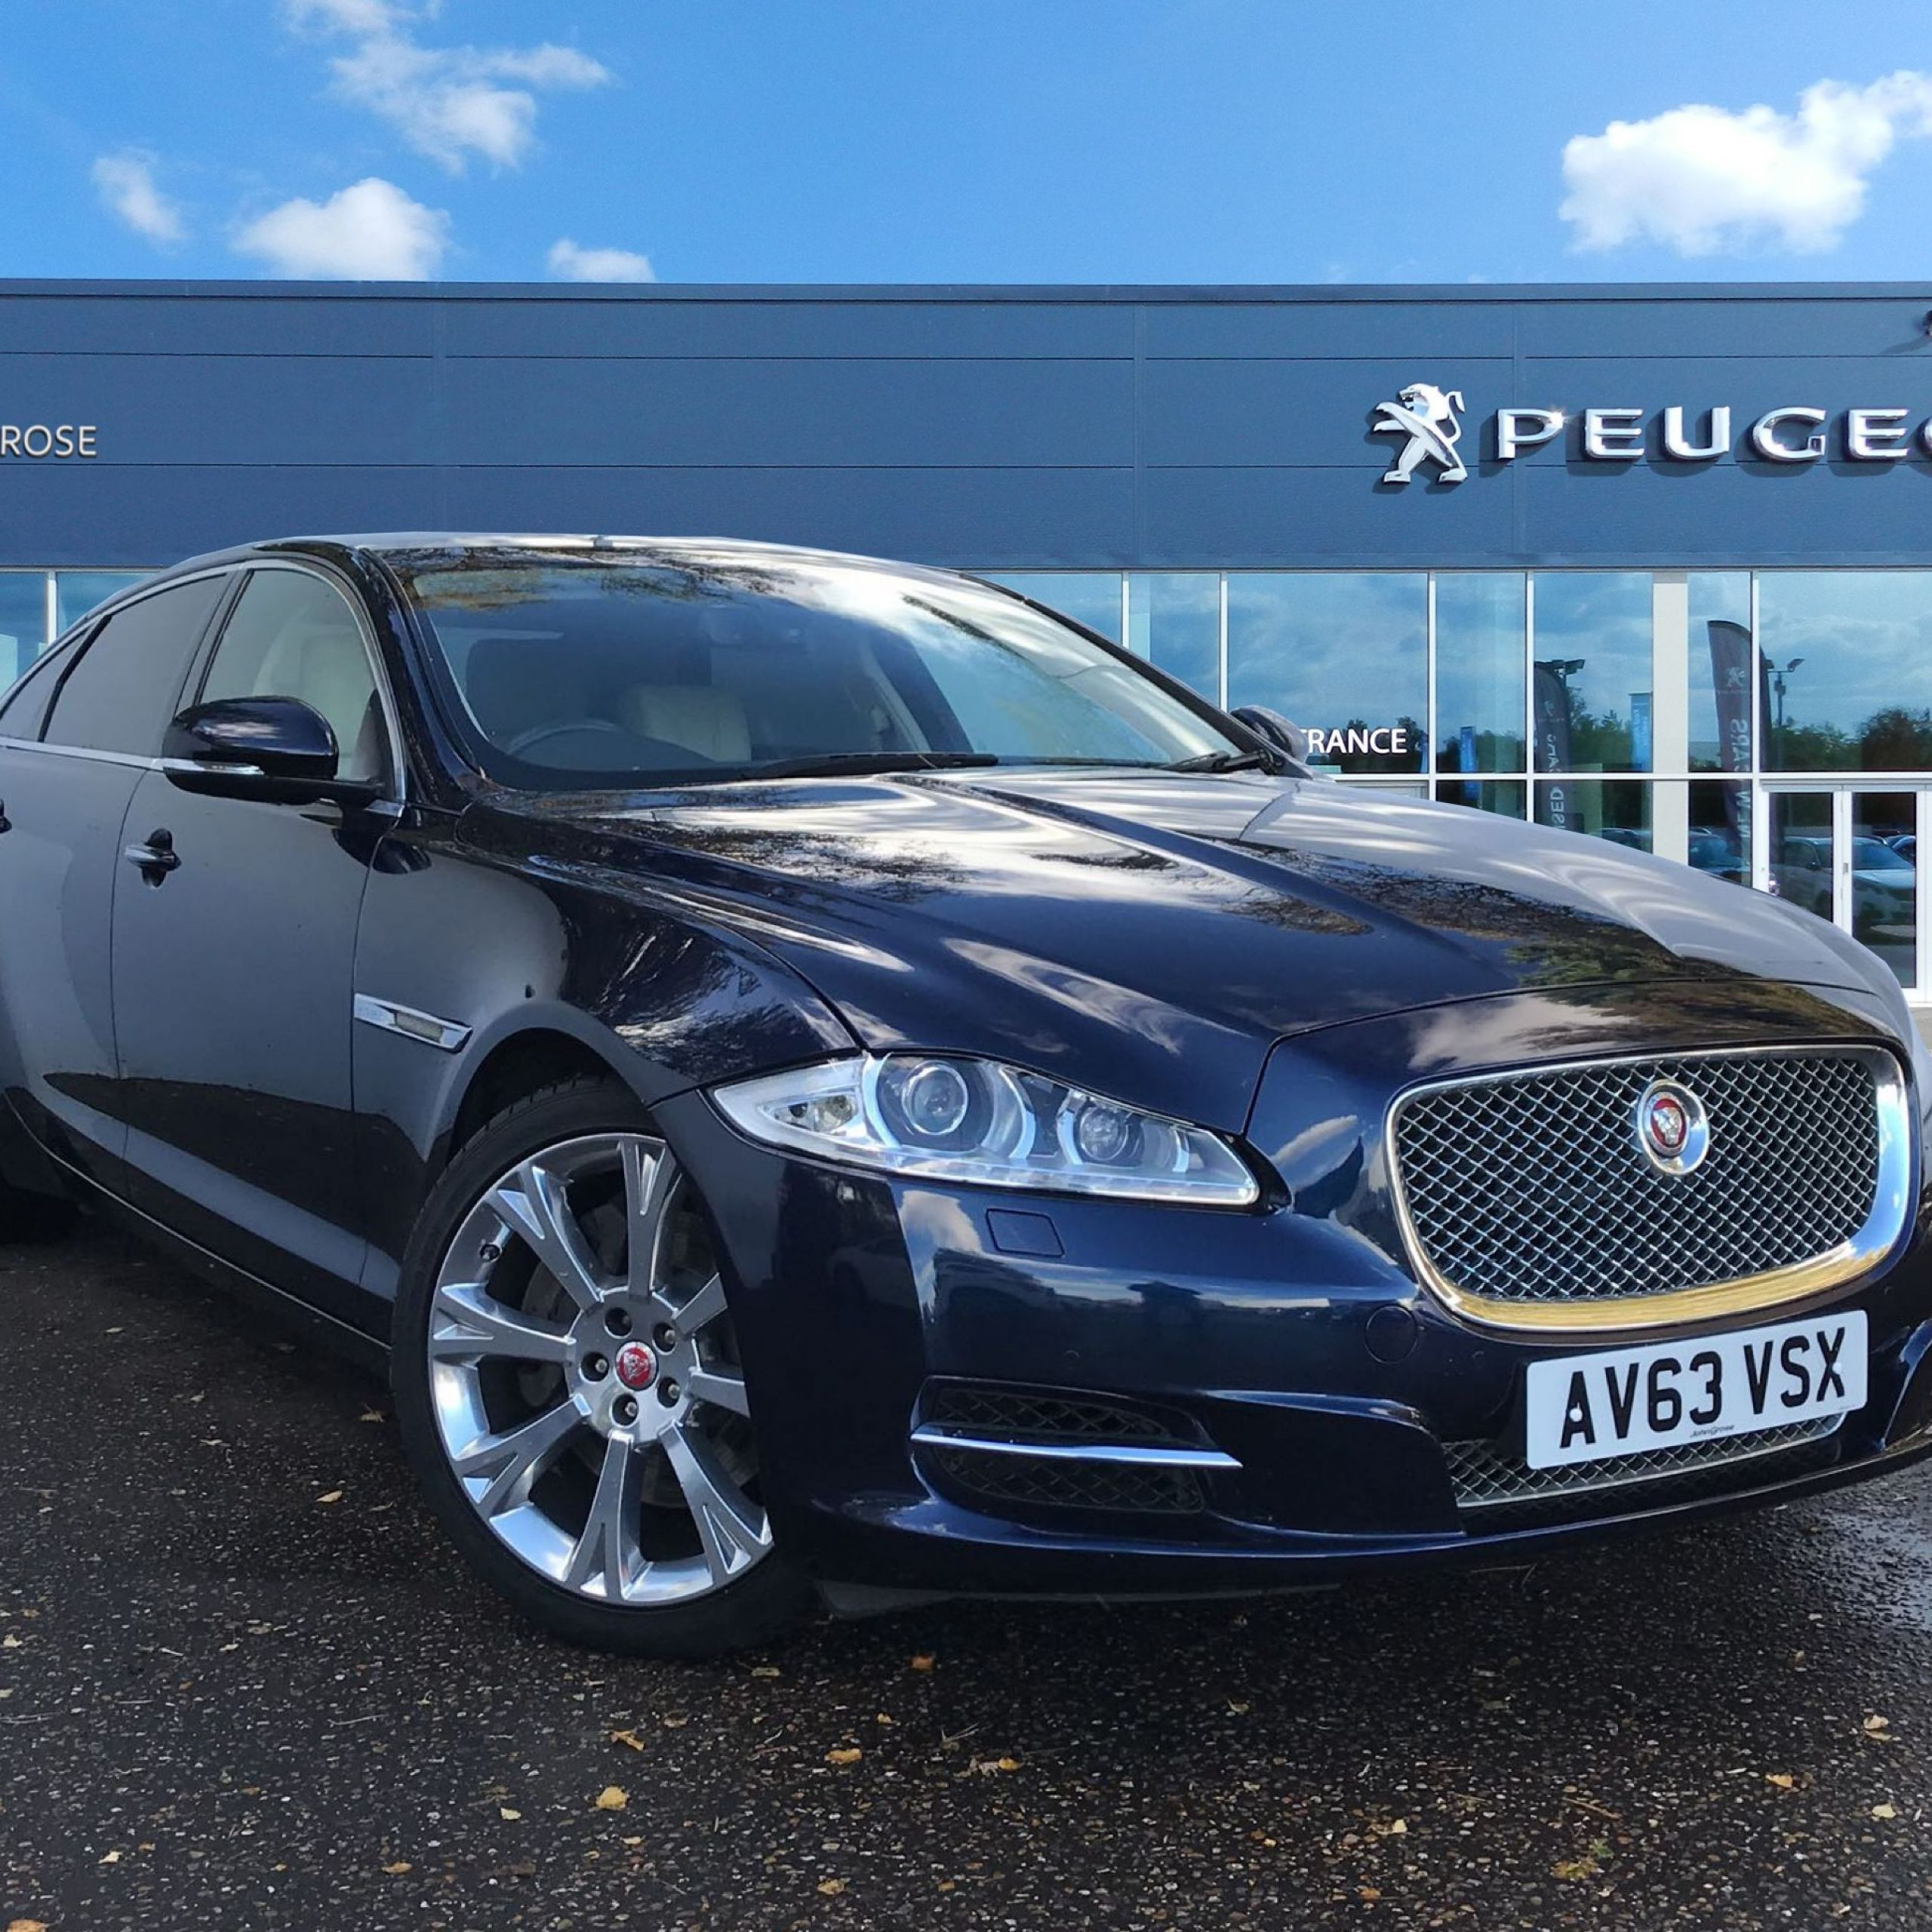 Used Cars for Sale Edinburgh Inspirational Used Jaguar Xj Cars for Sale On What Car